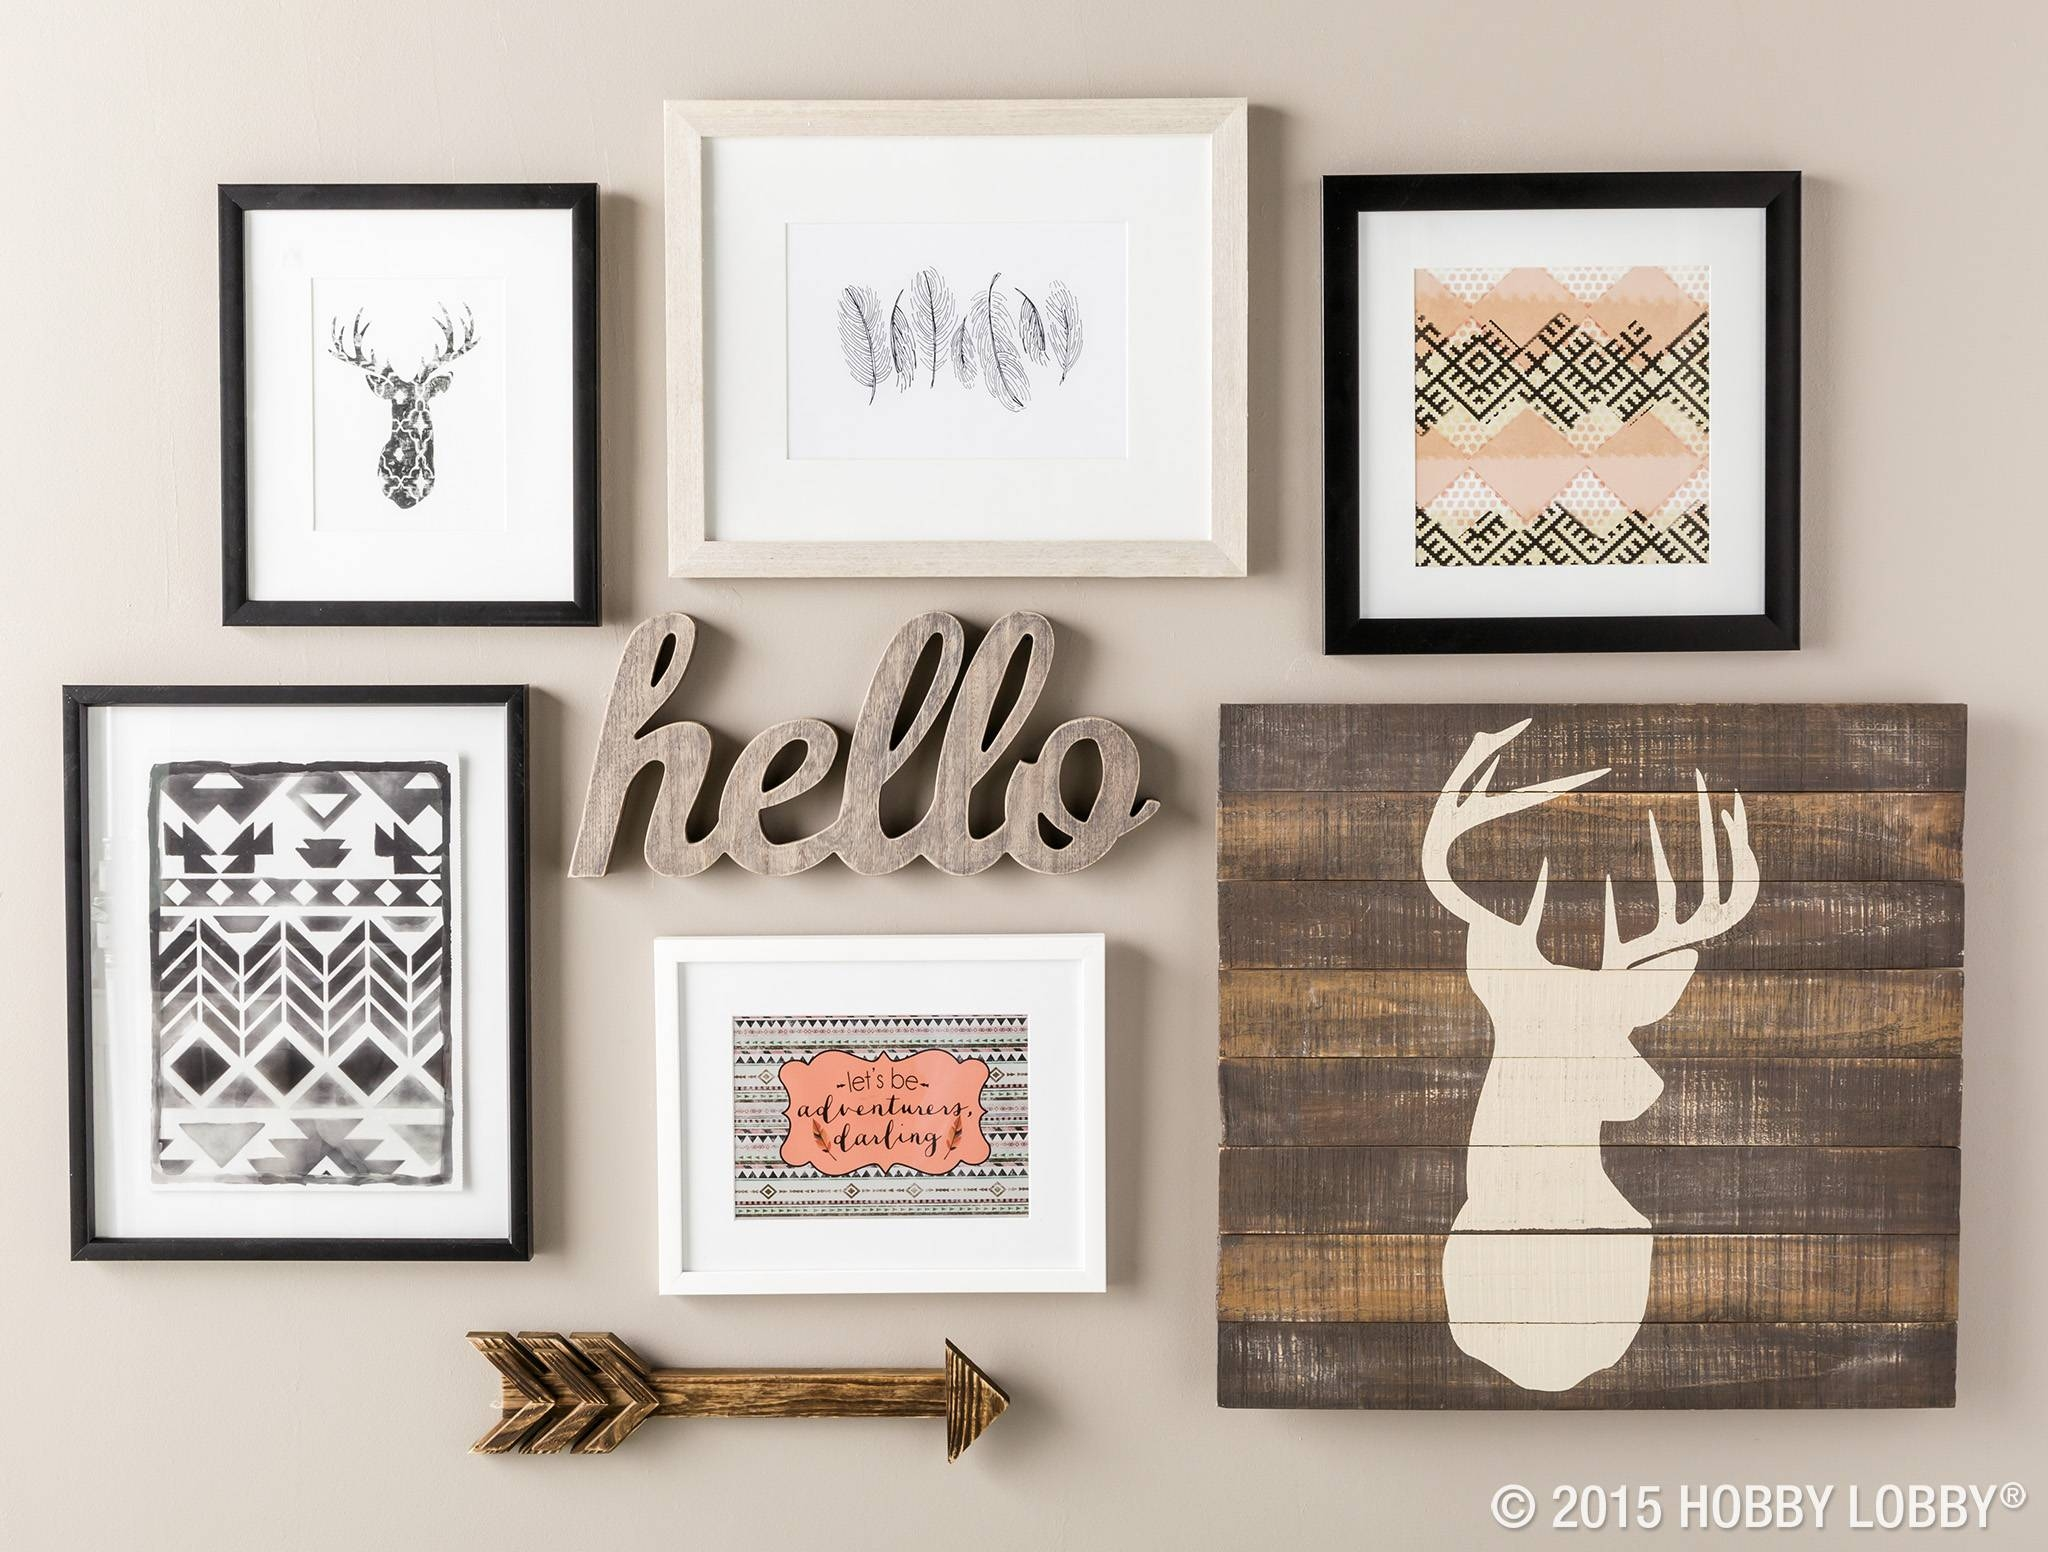 Mesmerizing Country Style Wall Decor Cool Large Wall Decor Country For Newest Country Style Wall Art (View 26 of 30)